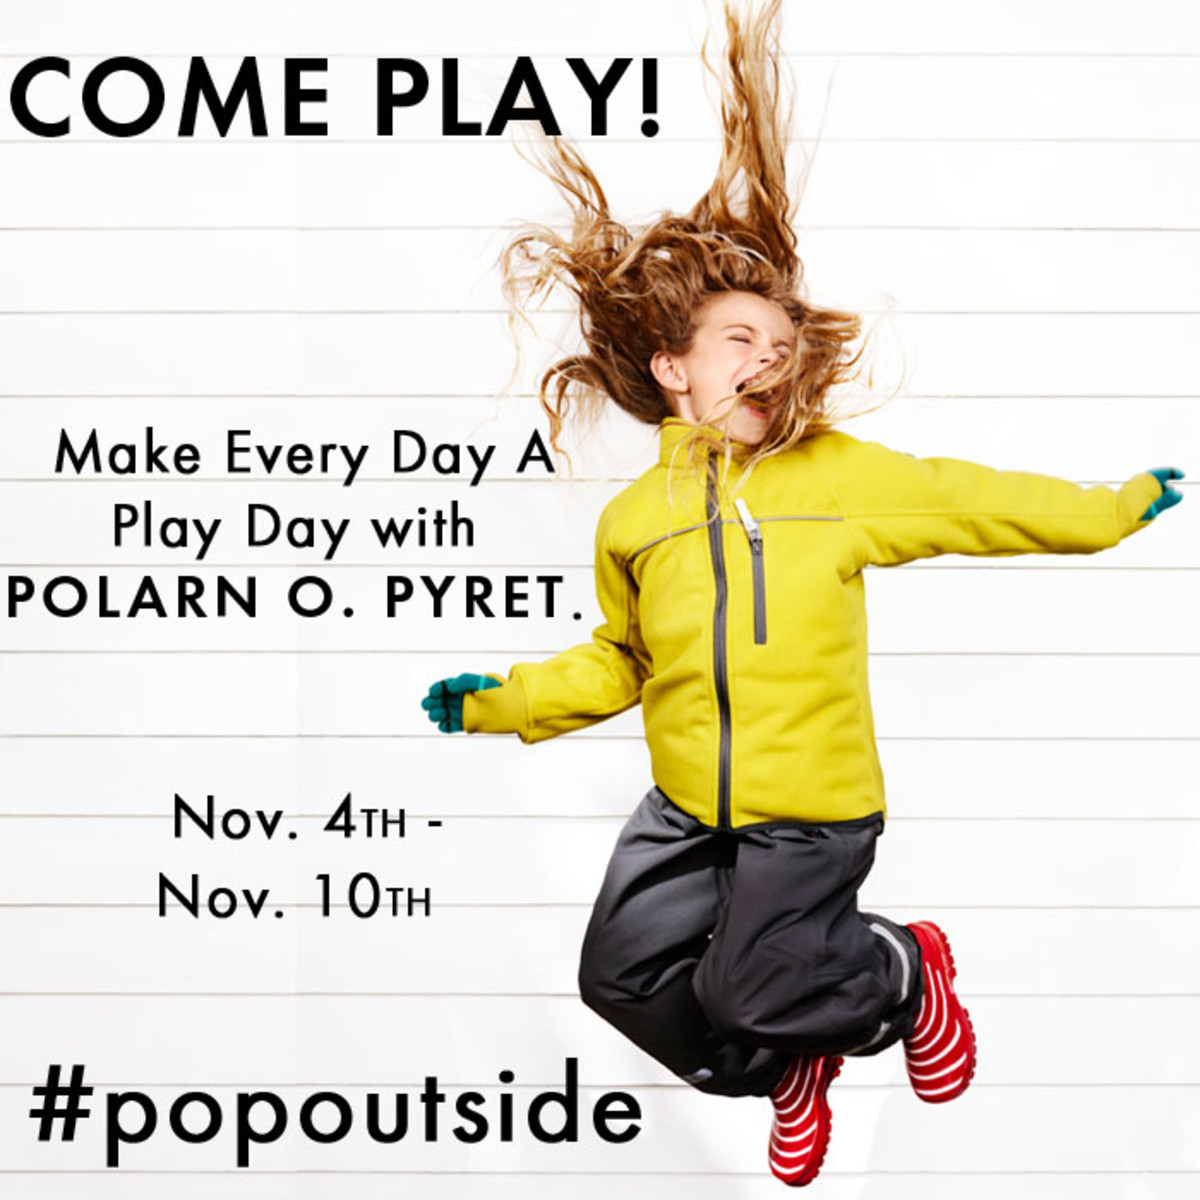 POLARN O. PYRET Makes Every Day a Play Day